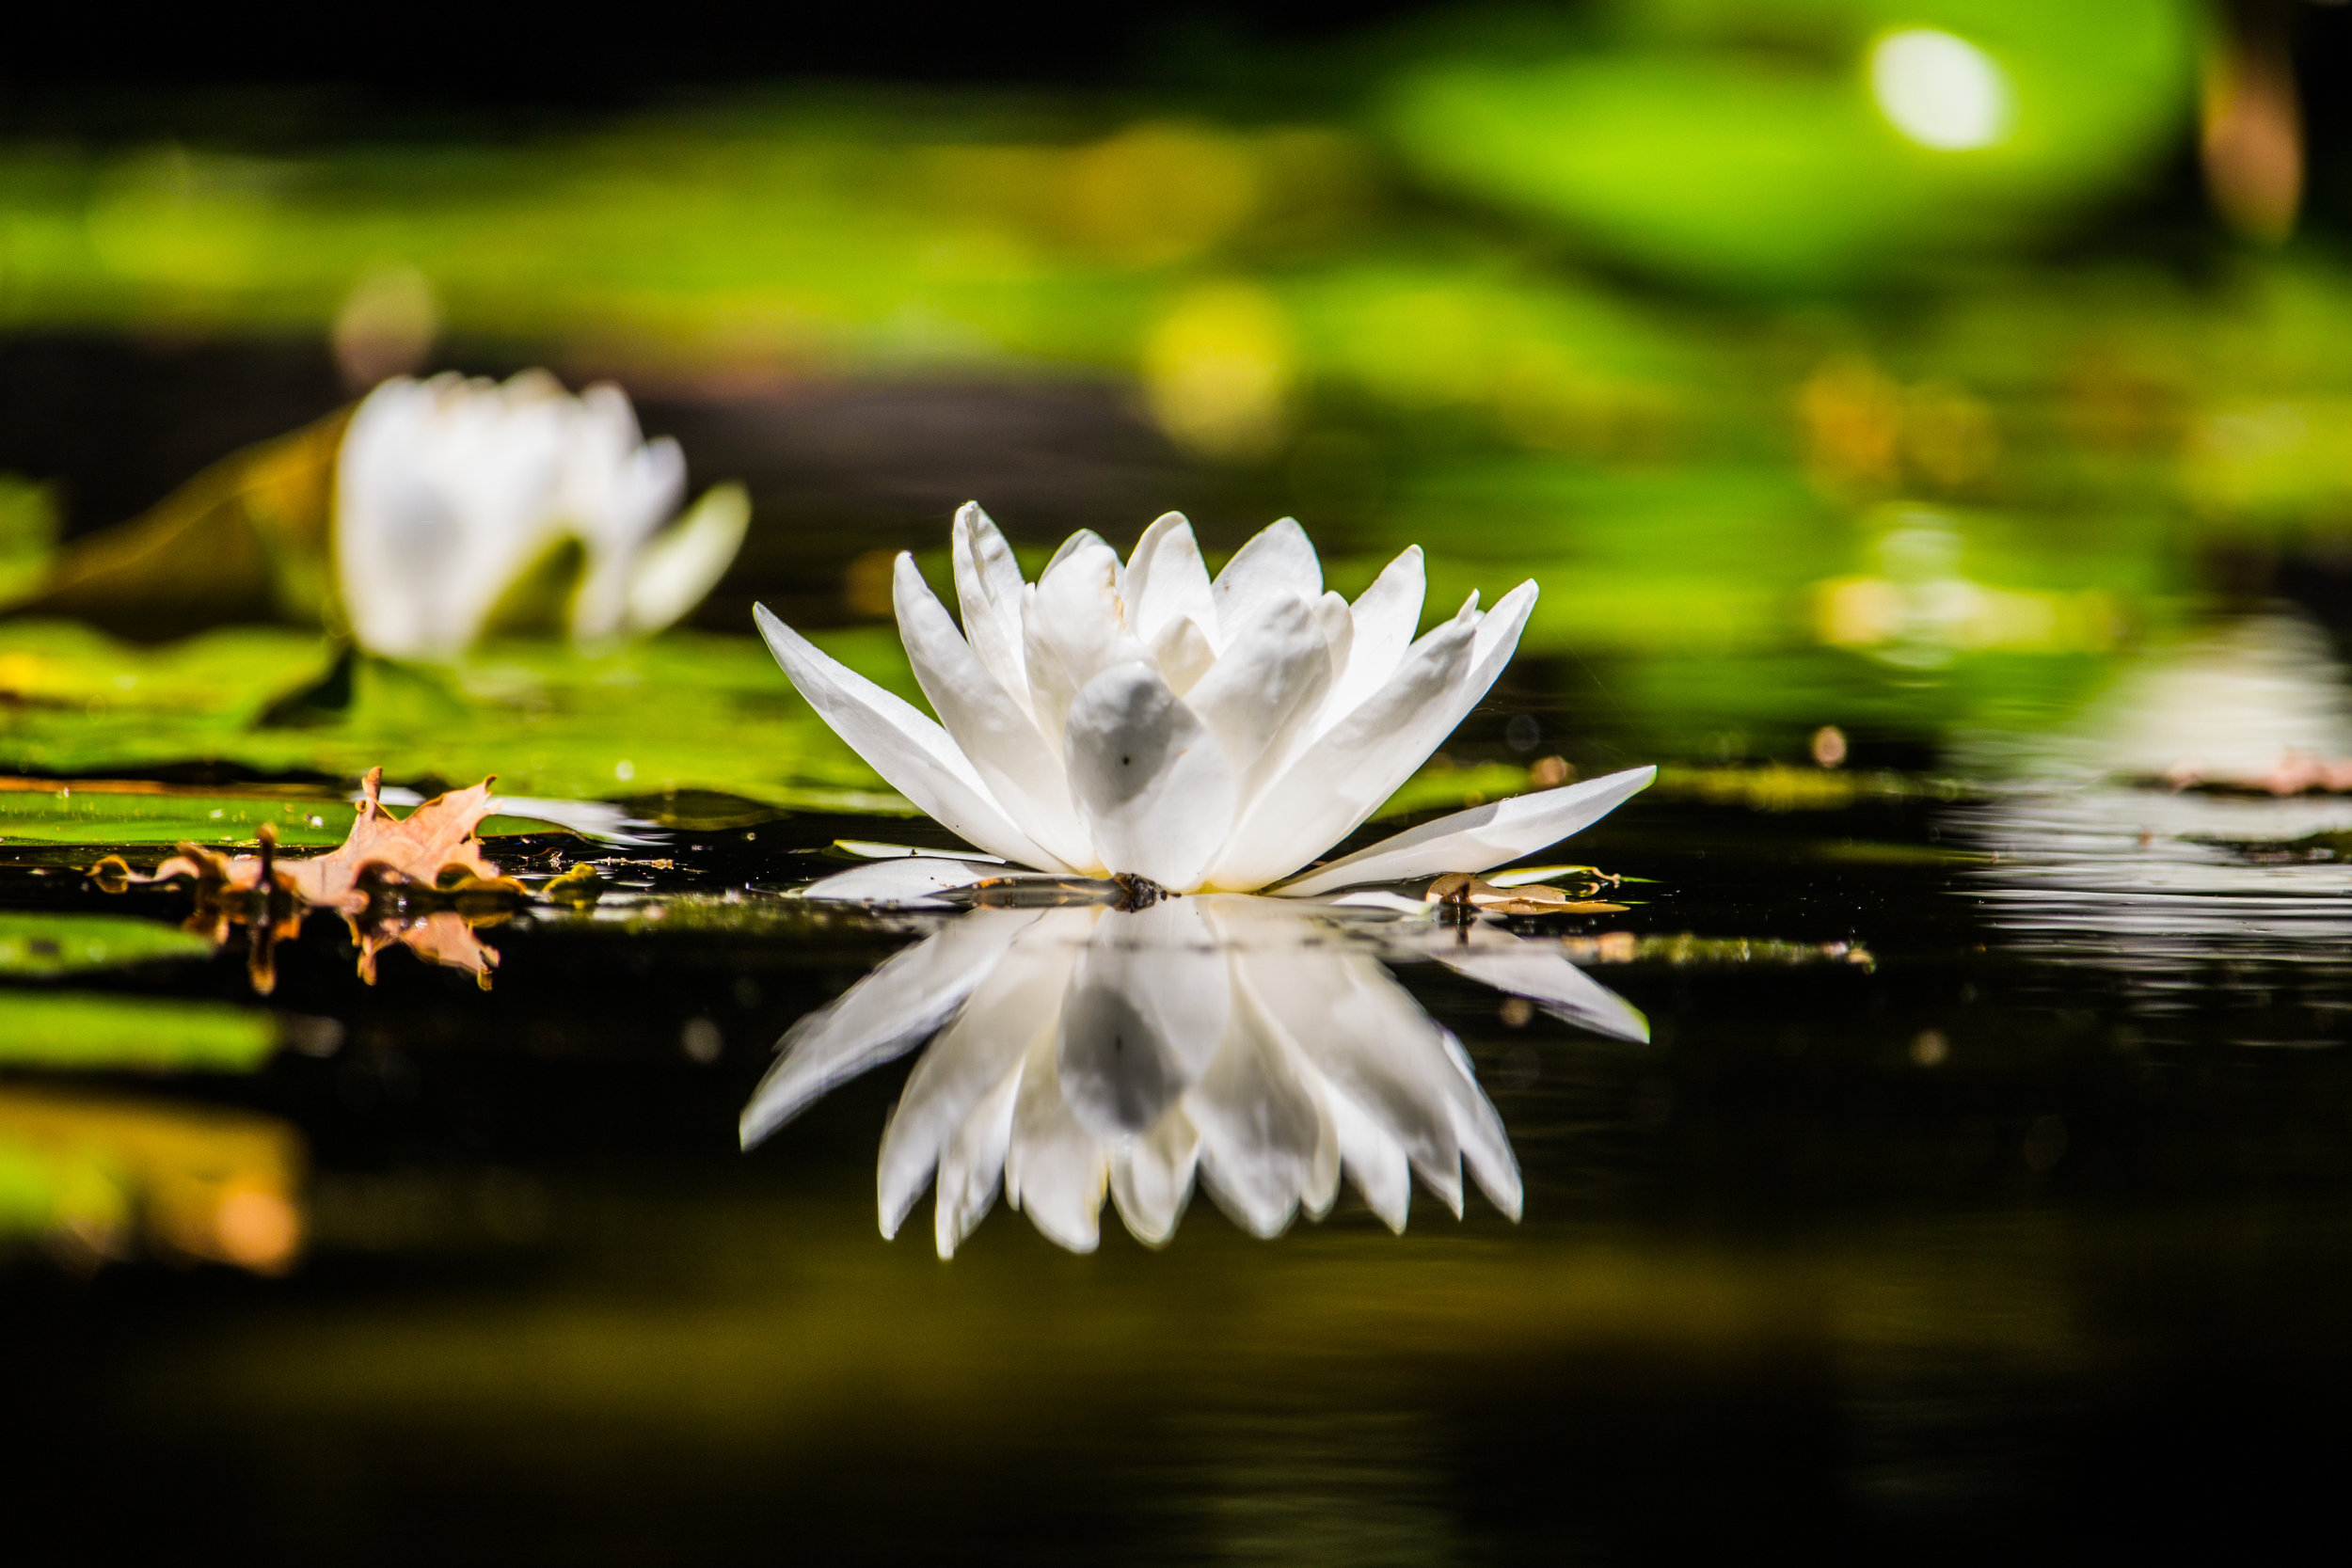 lotus flower blooming.jpg